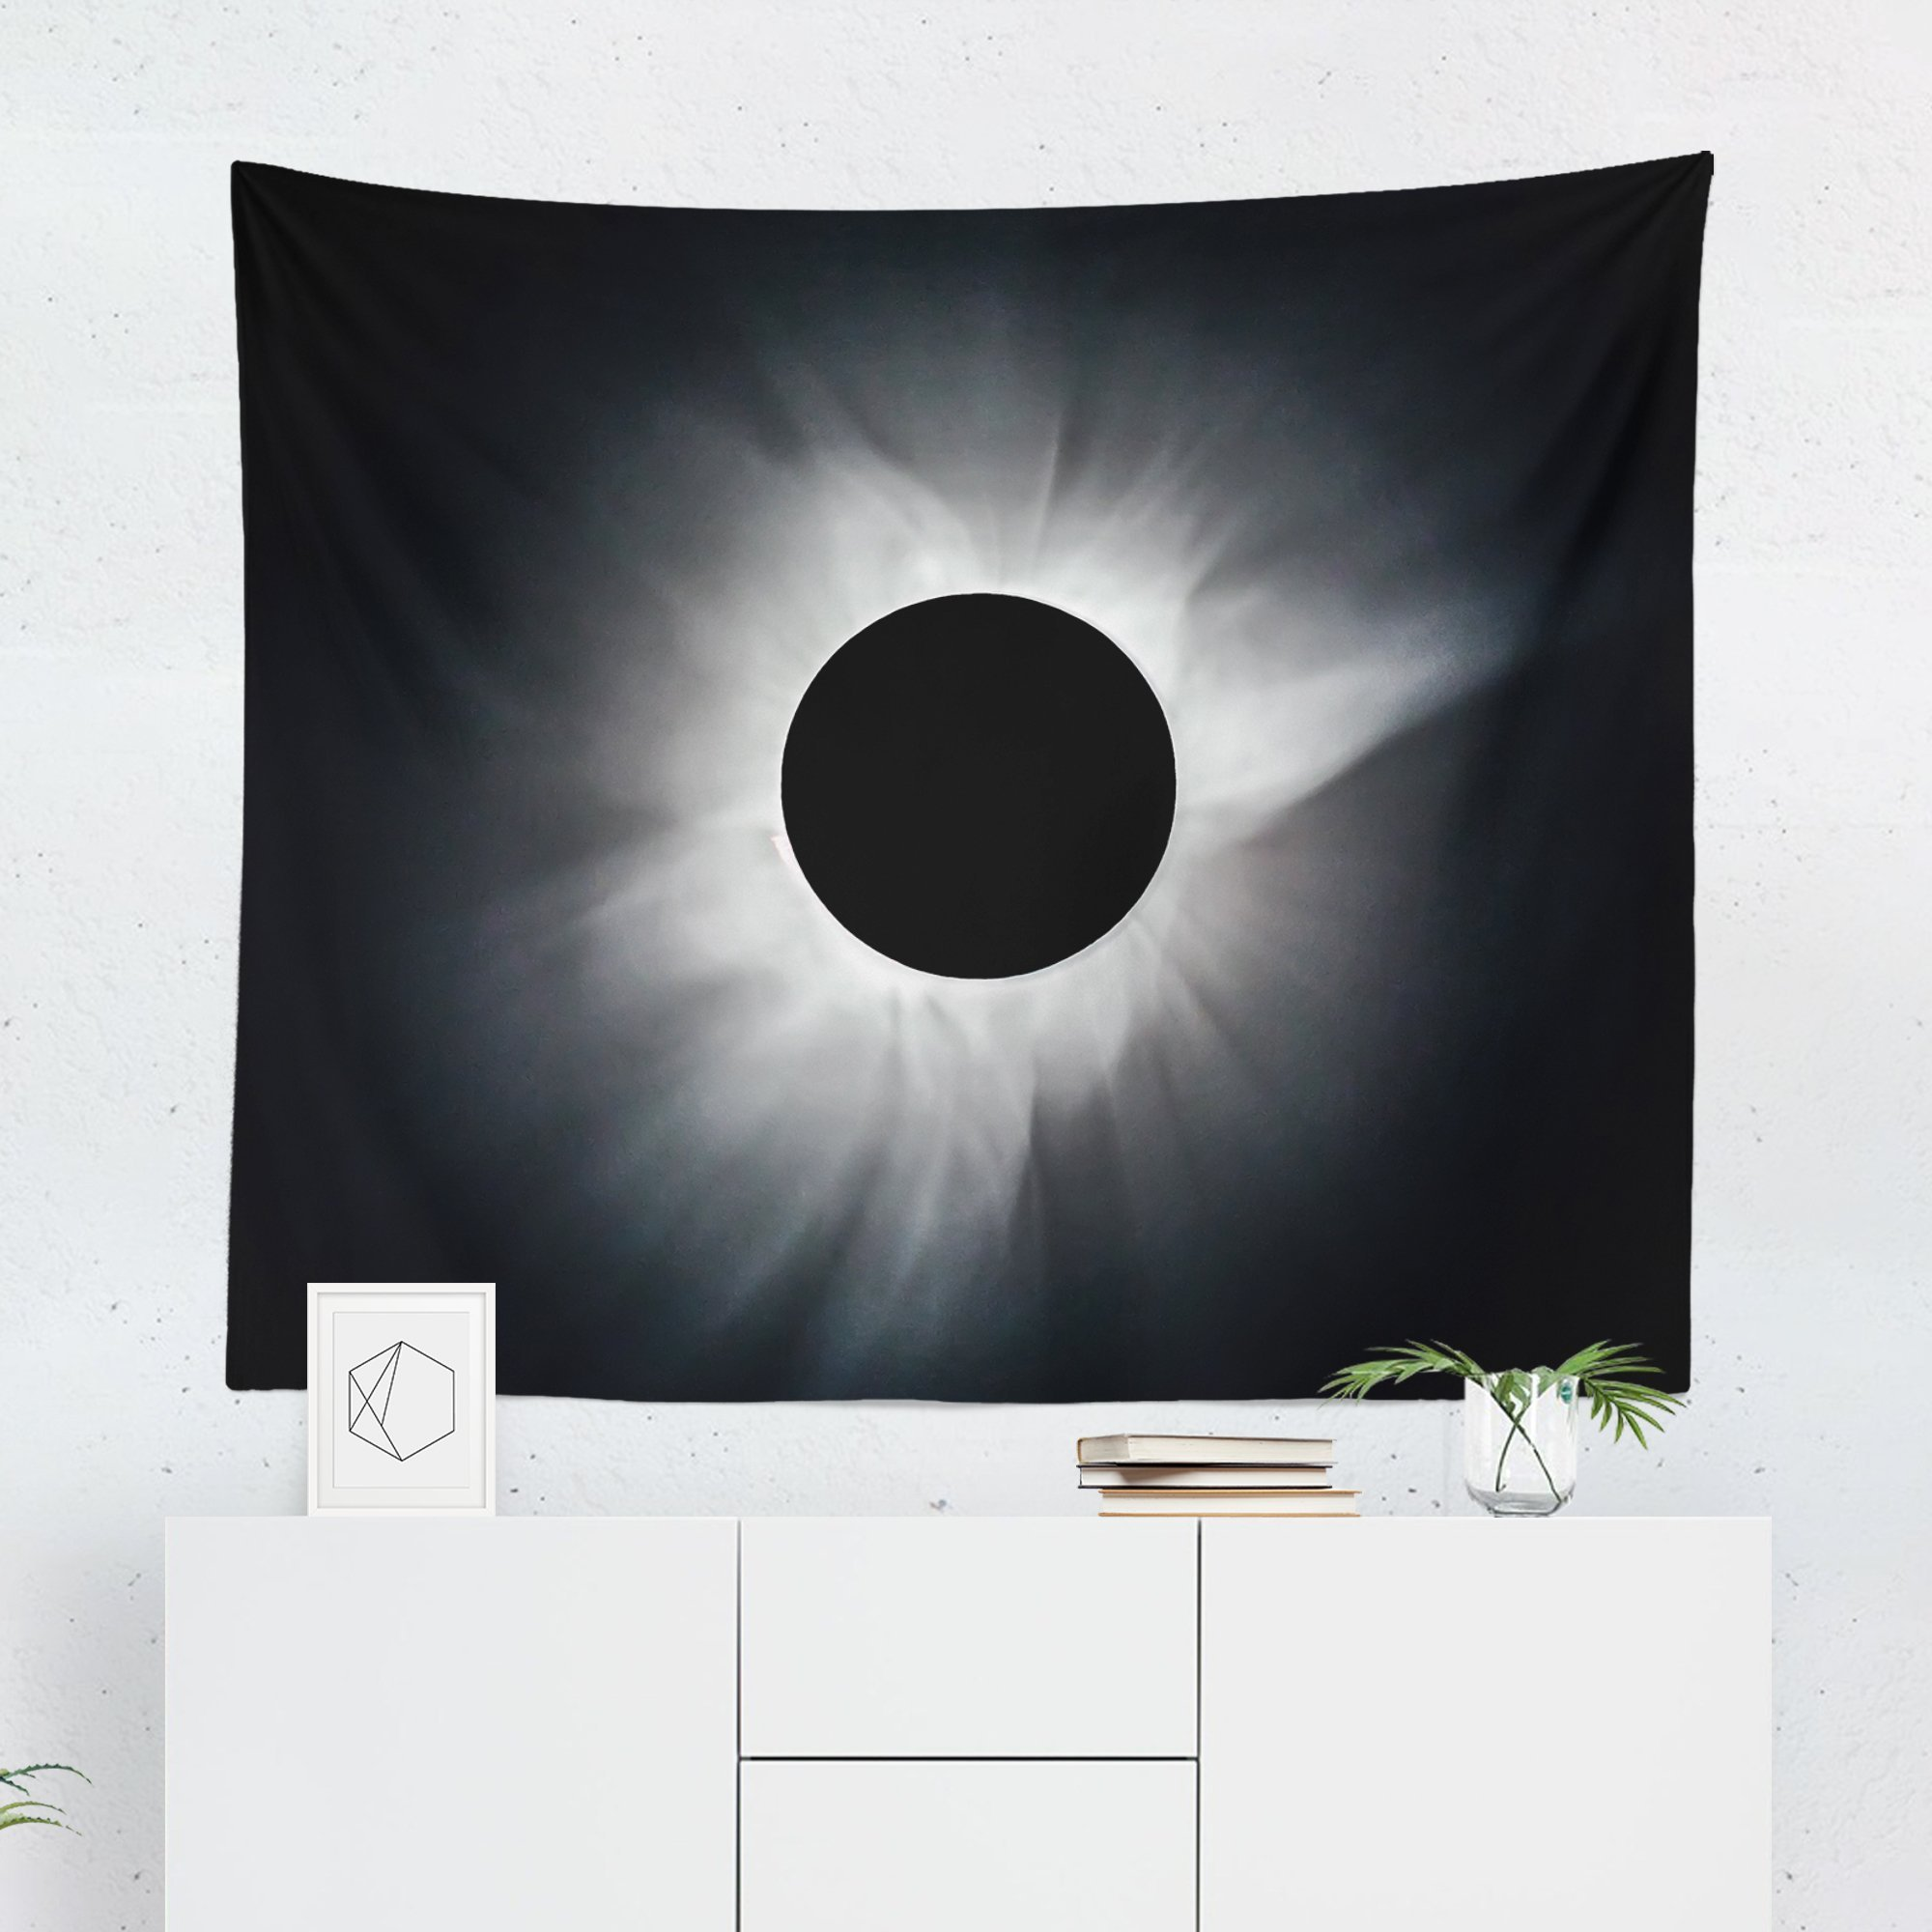 Solar Eclipse Tapestry - Moon Sun Stars Wall Tapestries Hanging Décor Bedroom Dorm College Living Room Home Art Print Decoration Decorative - Printed in the USA - Small Medium Large Sizes